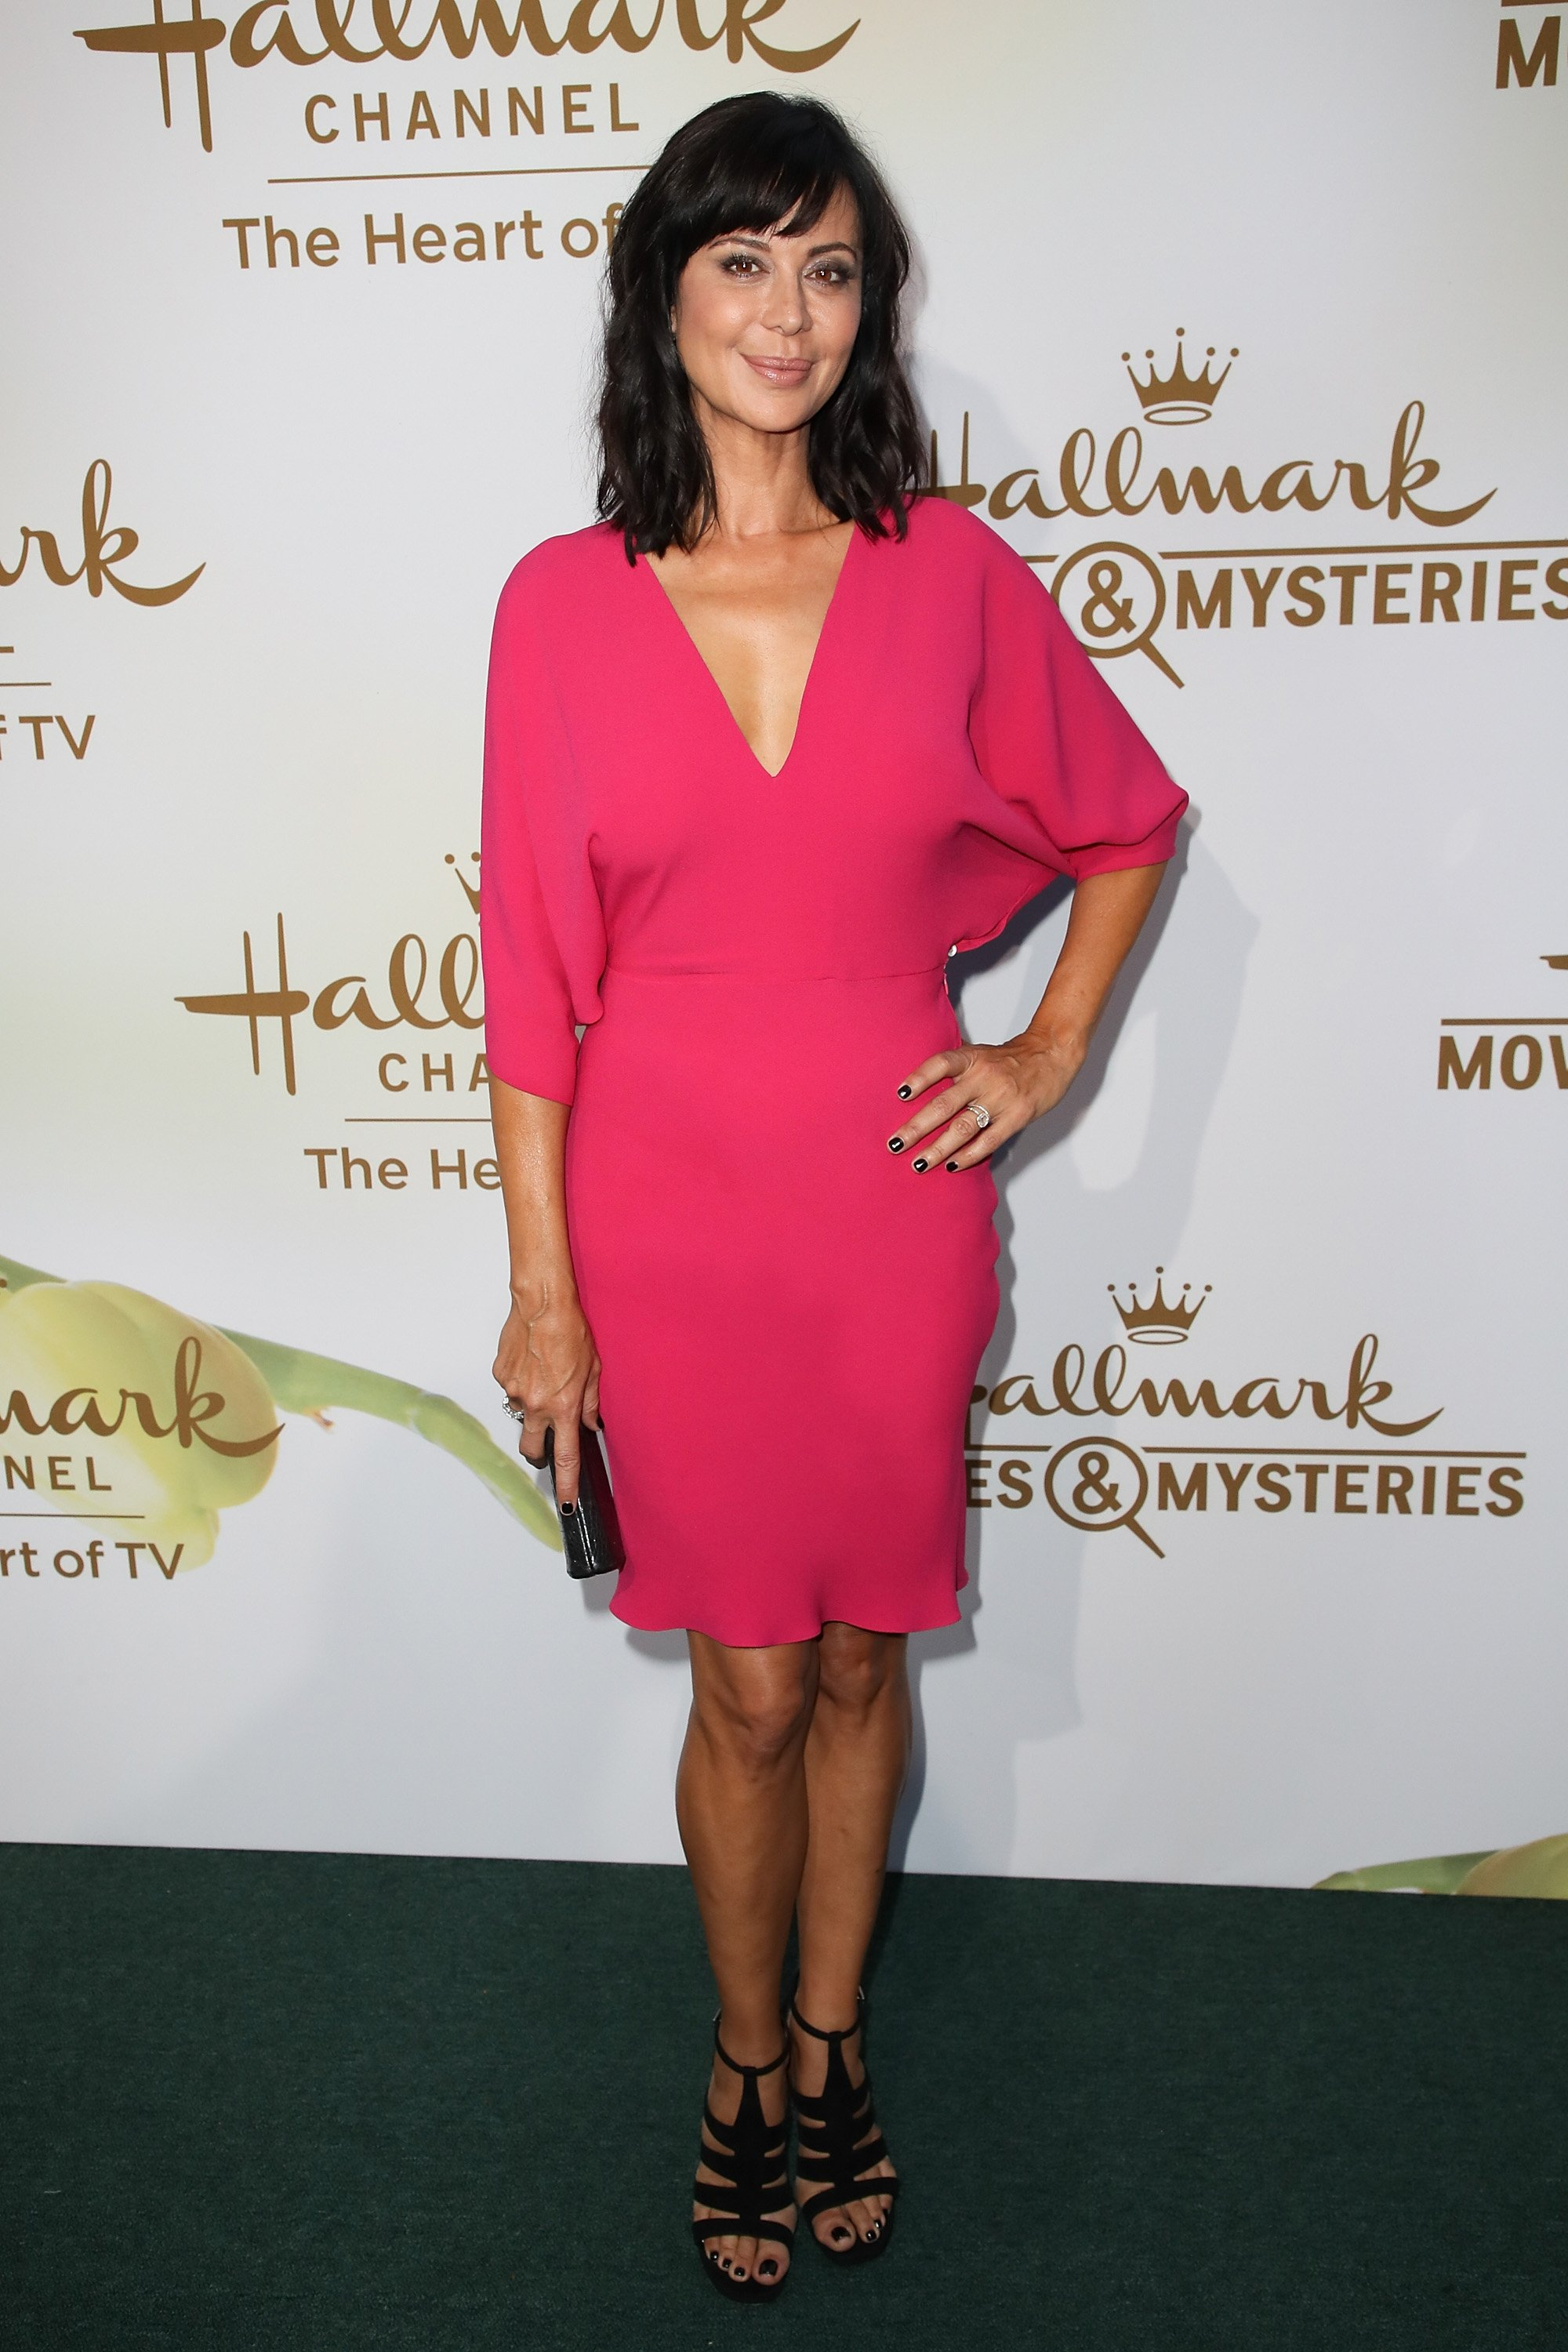 Catherine Bell in Beverly Hills, California on July 27, 2017 | Photo: Getty Images